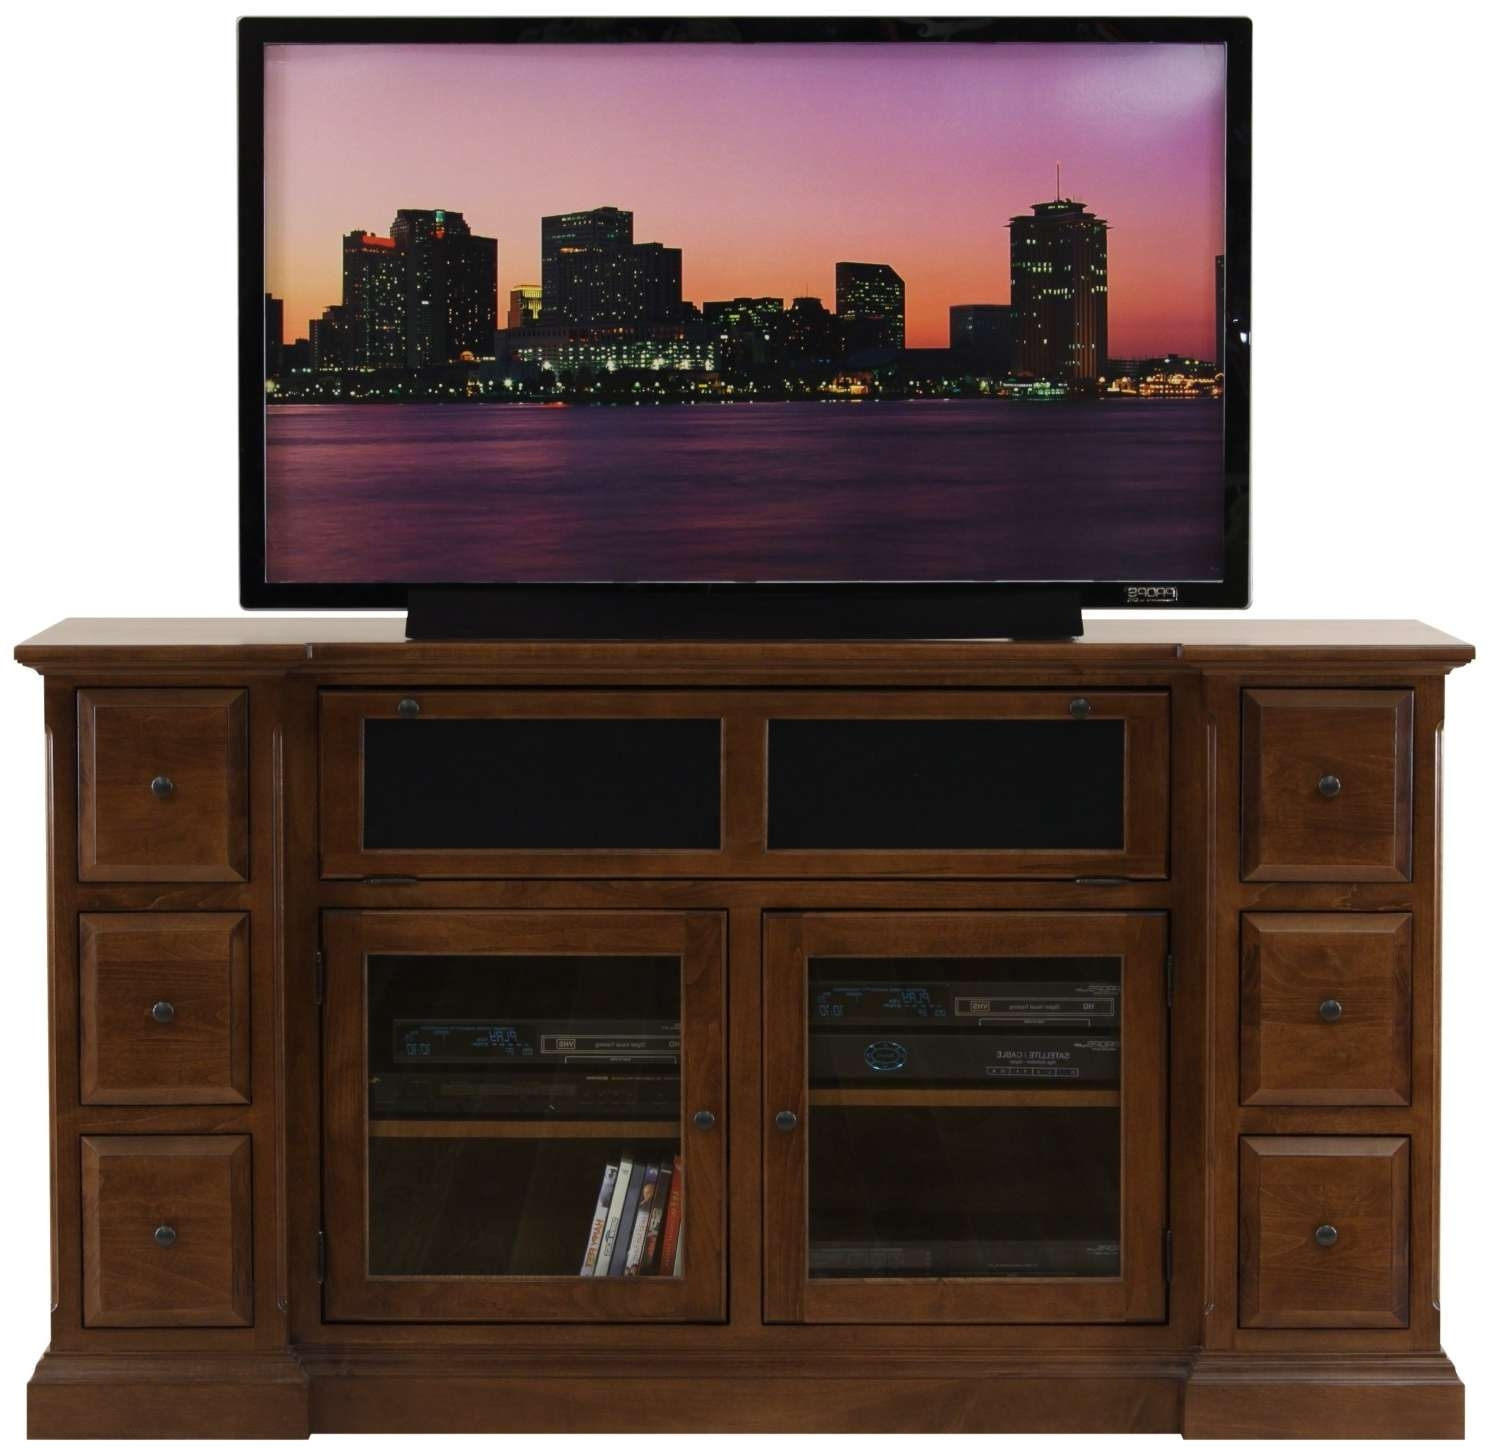 Wood Tv Stand With Glass Doors Images – Doors Design Ideas Inside Wood Tv Stands With Glass (View 11 of 15)